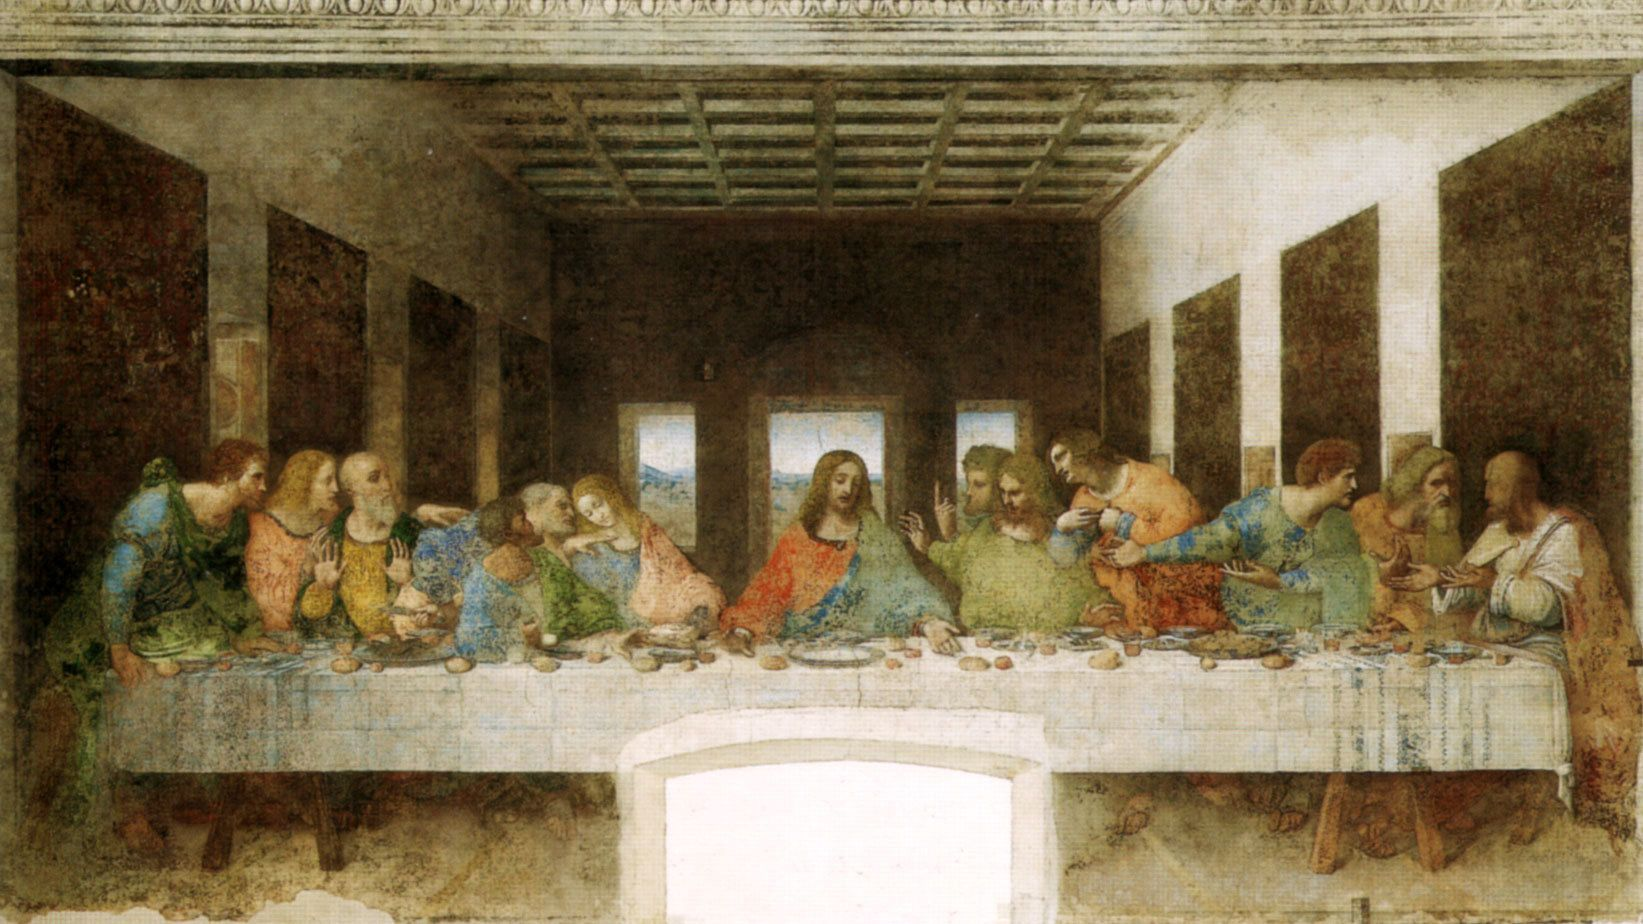 Skip-the-Line: The Last Supper Ticket & Tour